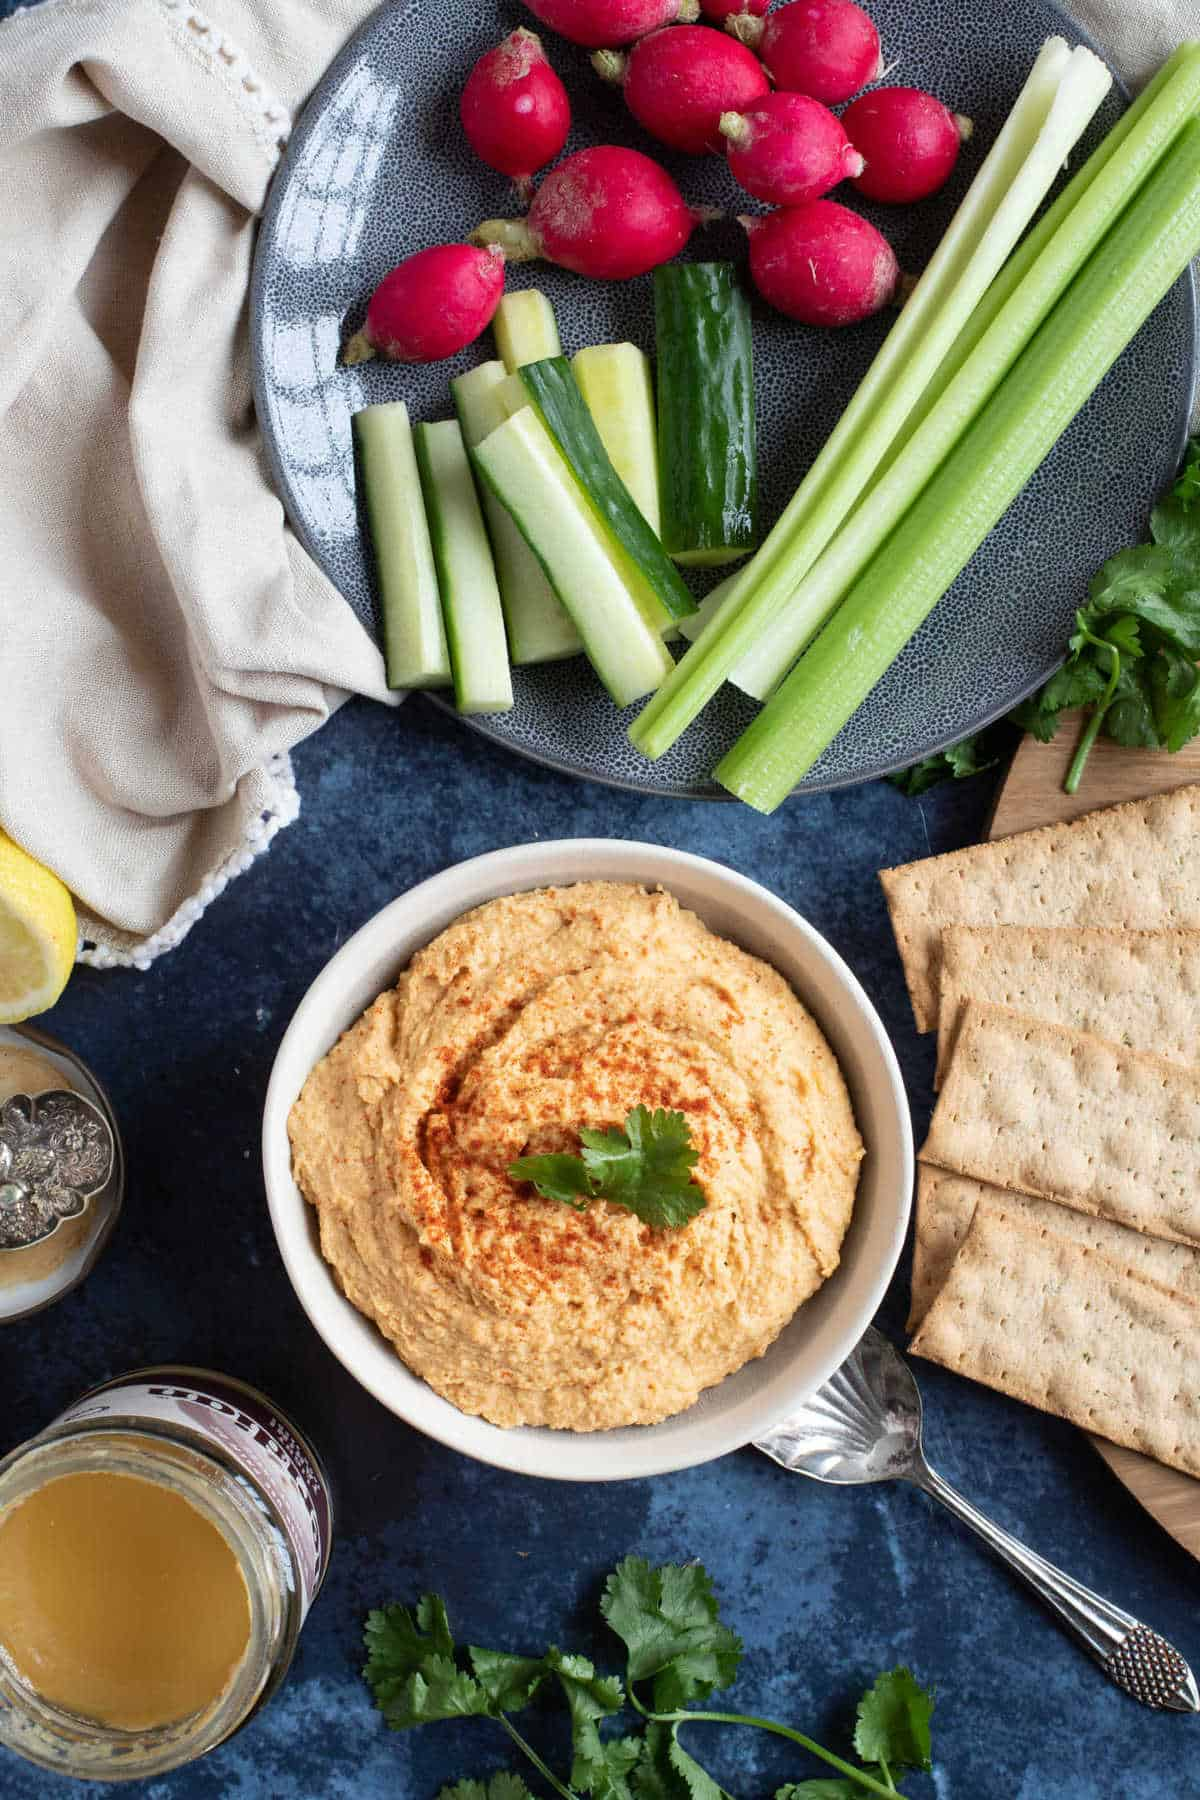 A bowl of homemade Moroccan hummus with fresh raw vegetables.